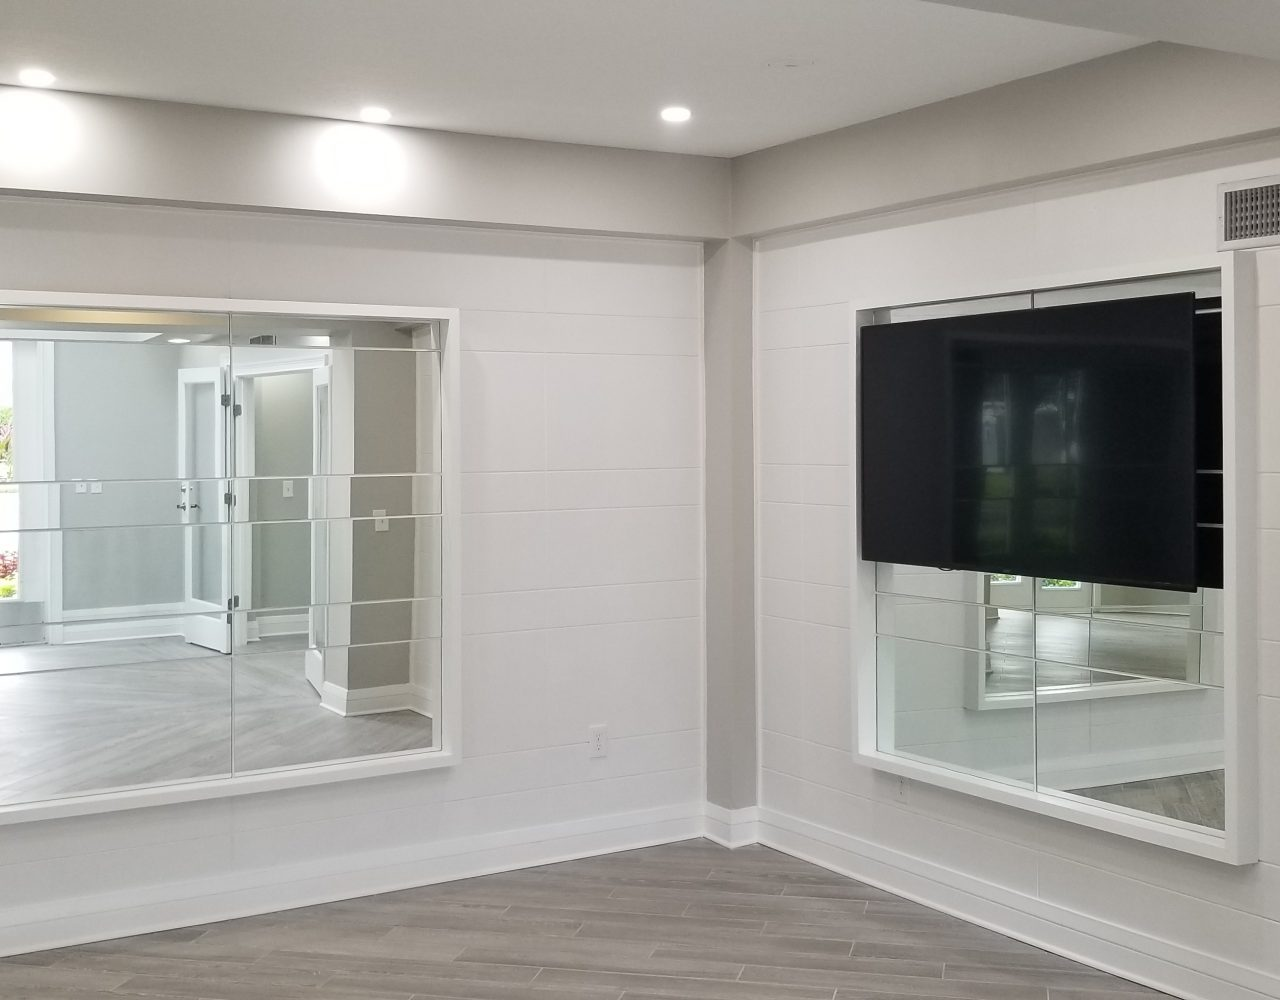 Arbors at Carrollwood Apartments - Wall Design, Mirrors and TV Installation